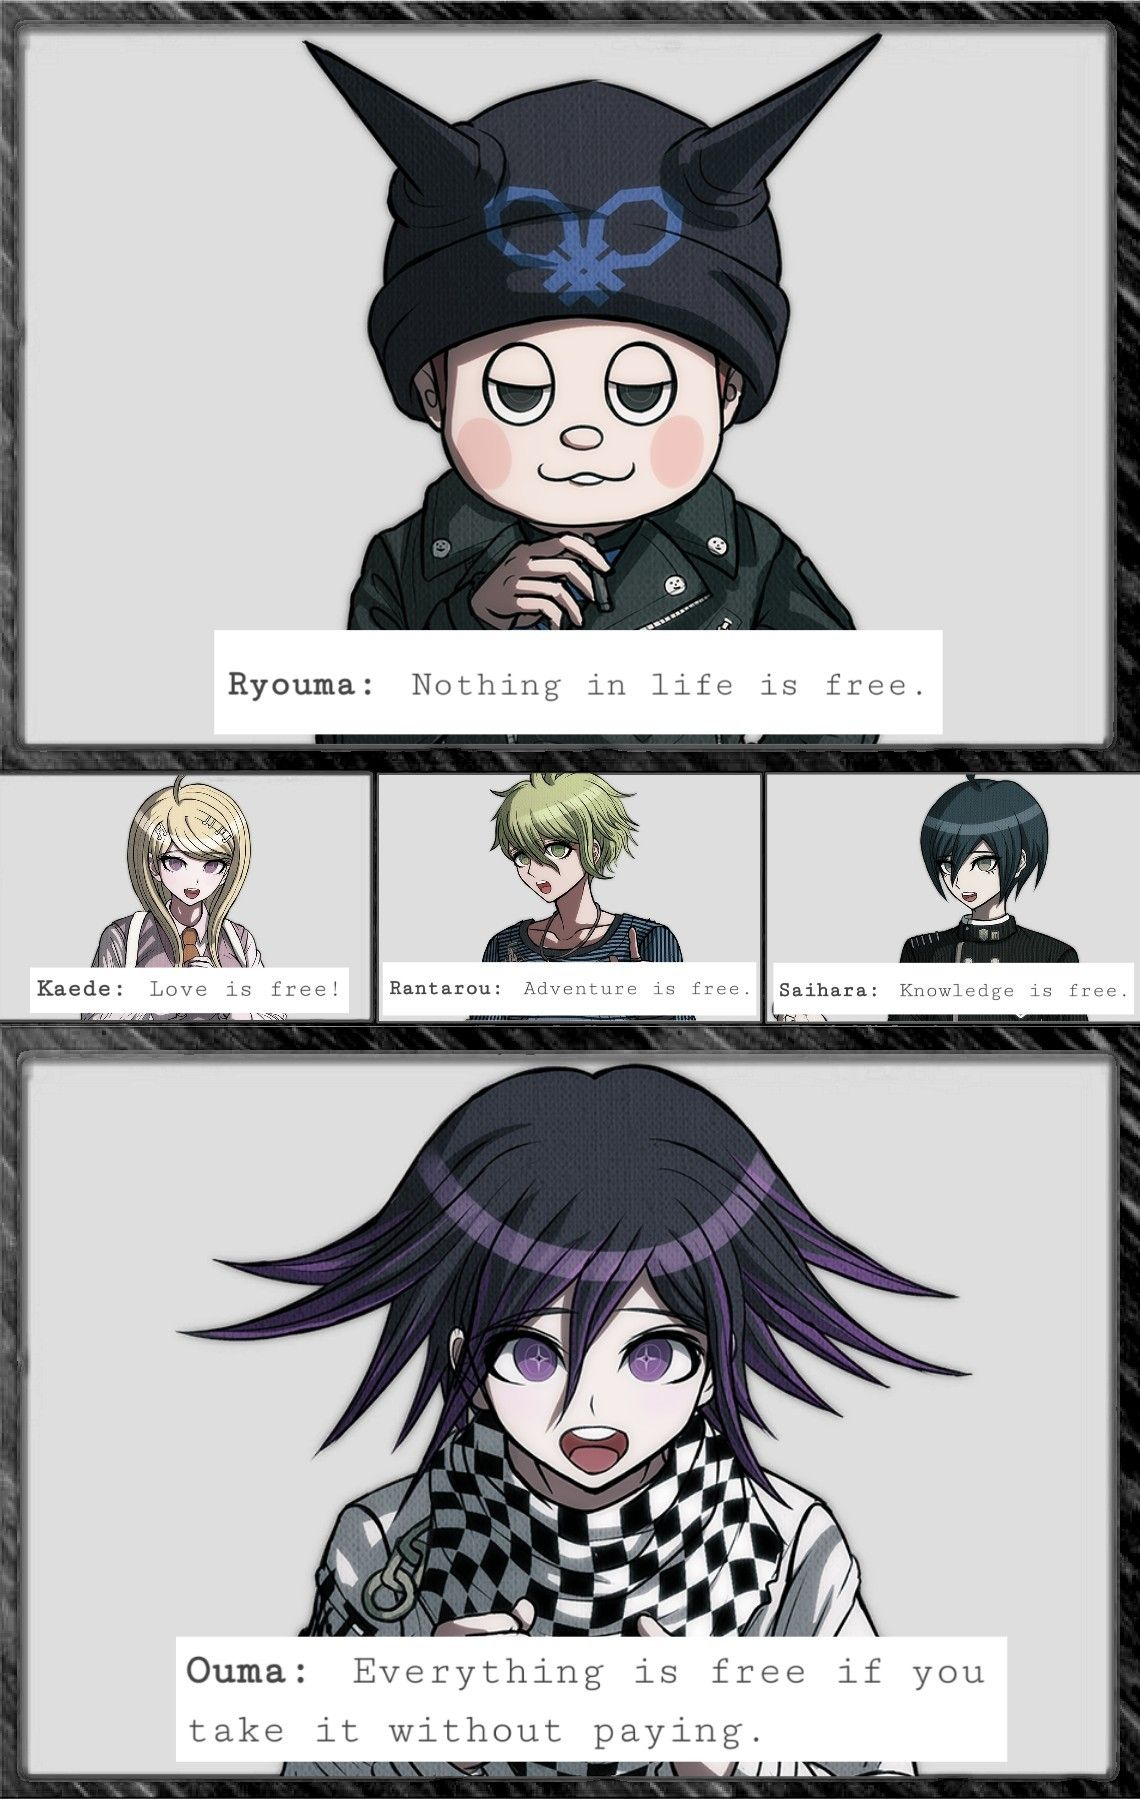 Life lessons with Ndrv3 characters!